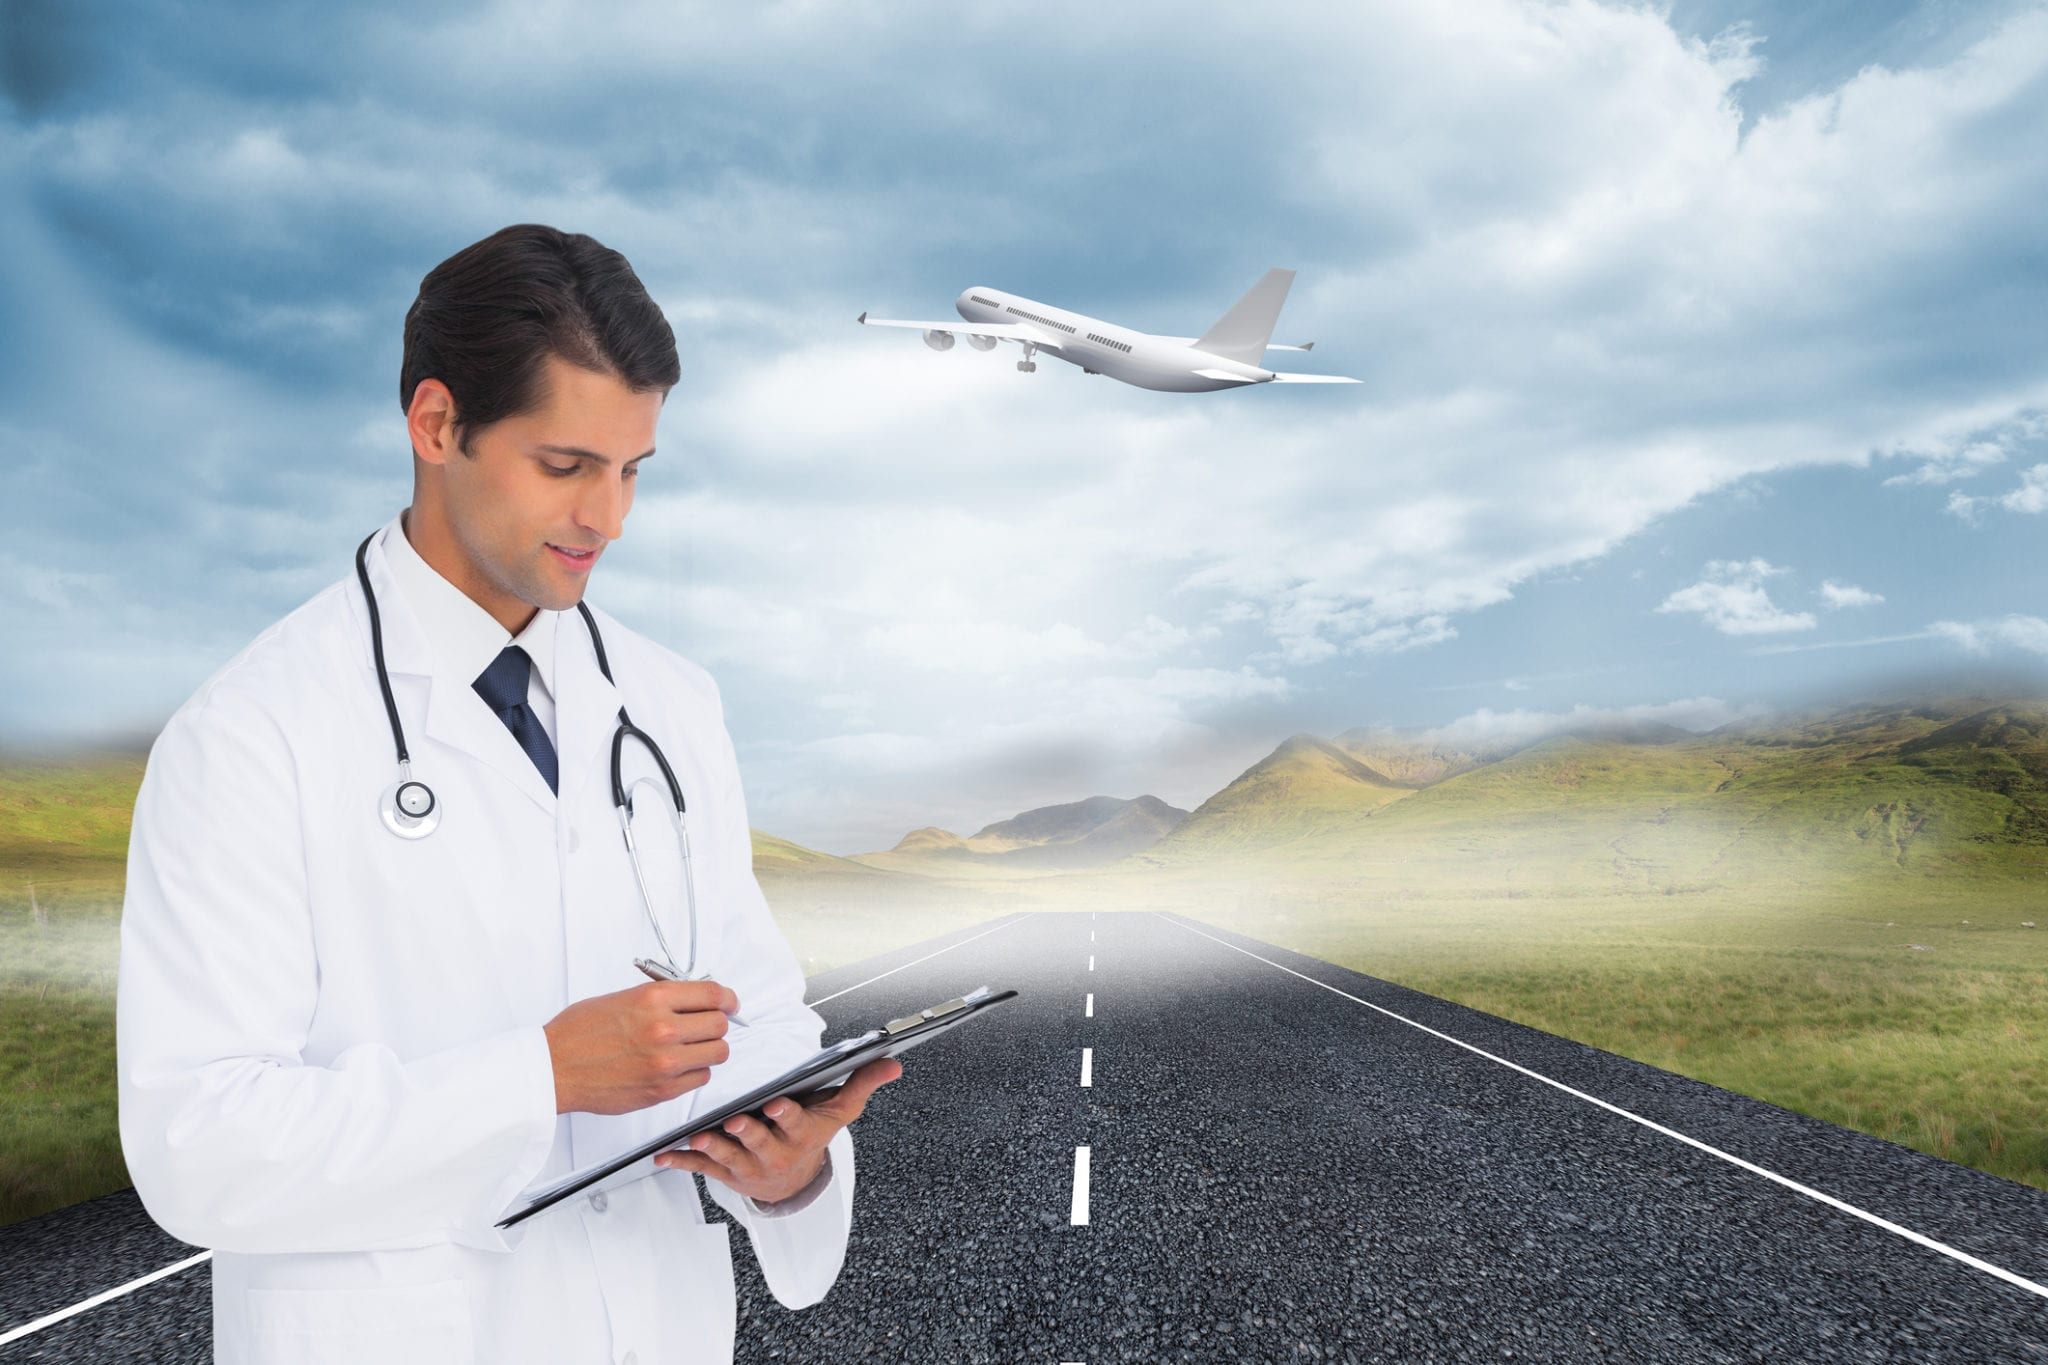 As a Locum Tenens physician, you may become a frequent traveler. Though the bulk of your expenses will be paid, you can still cash in on rewards programs.